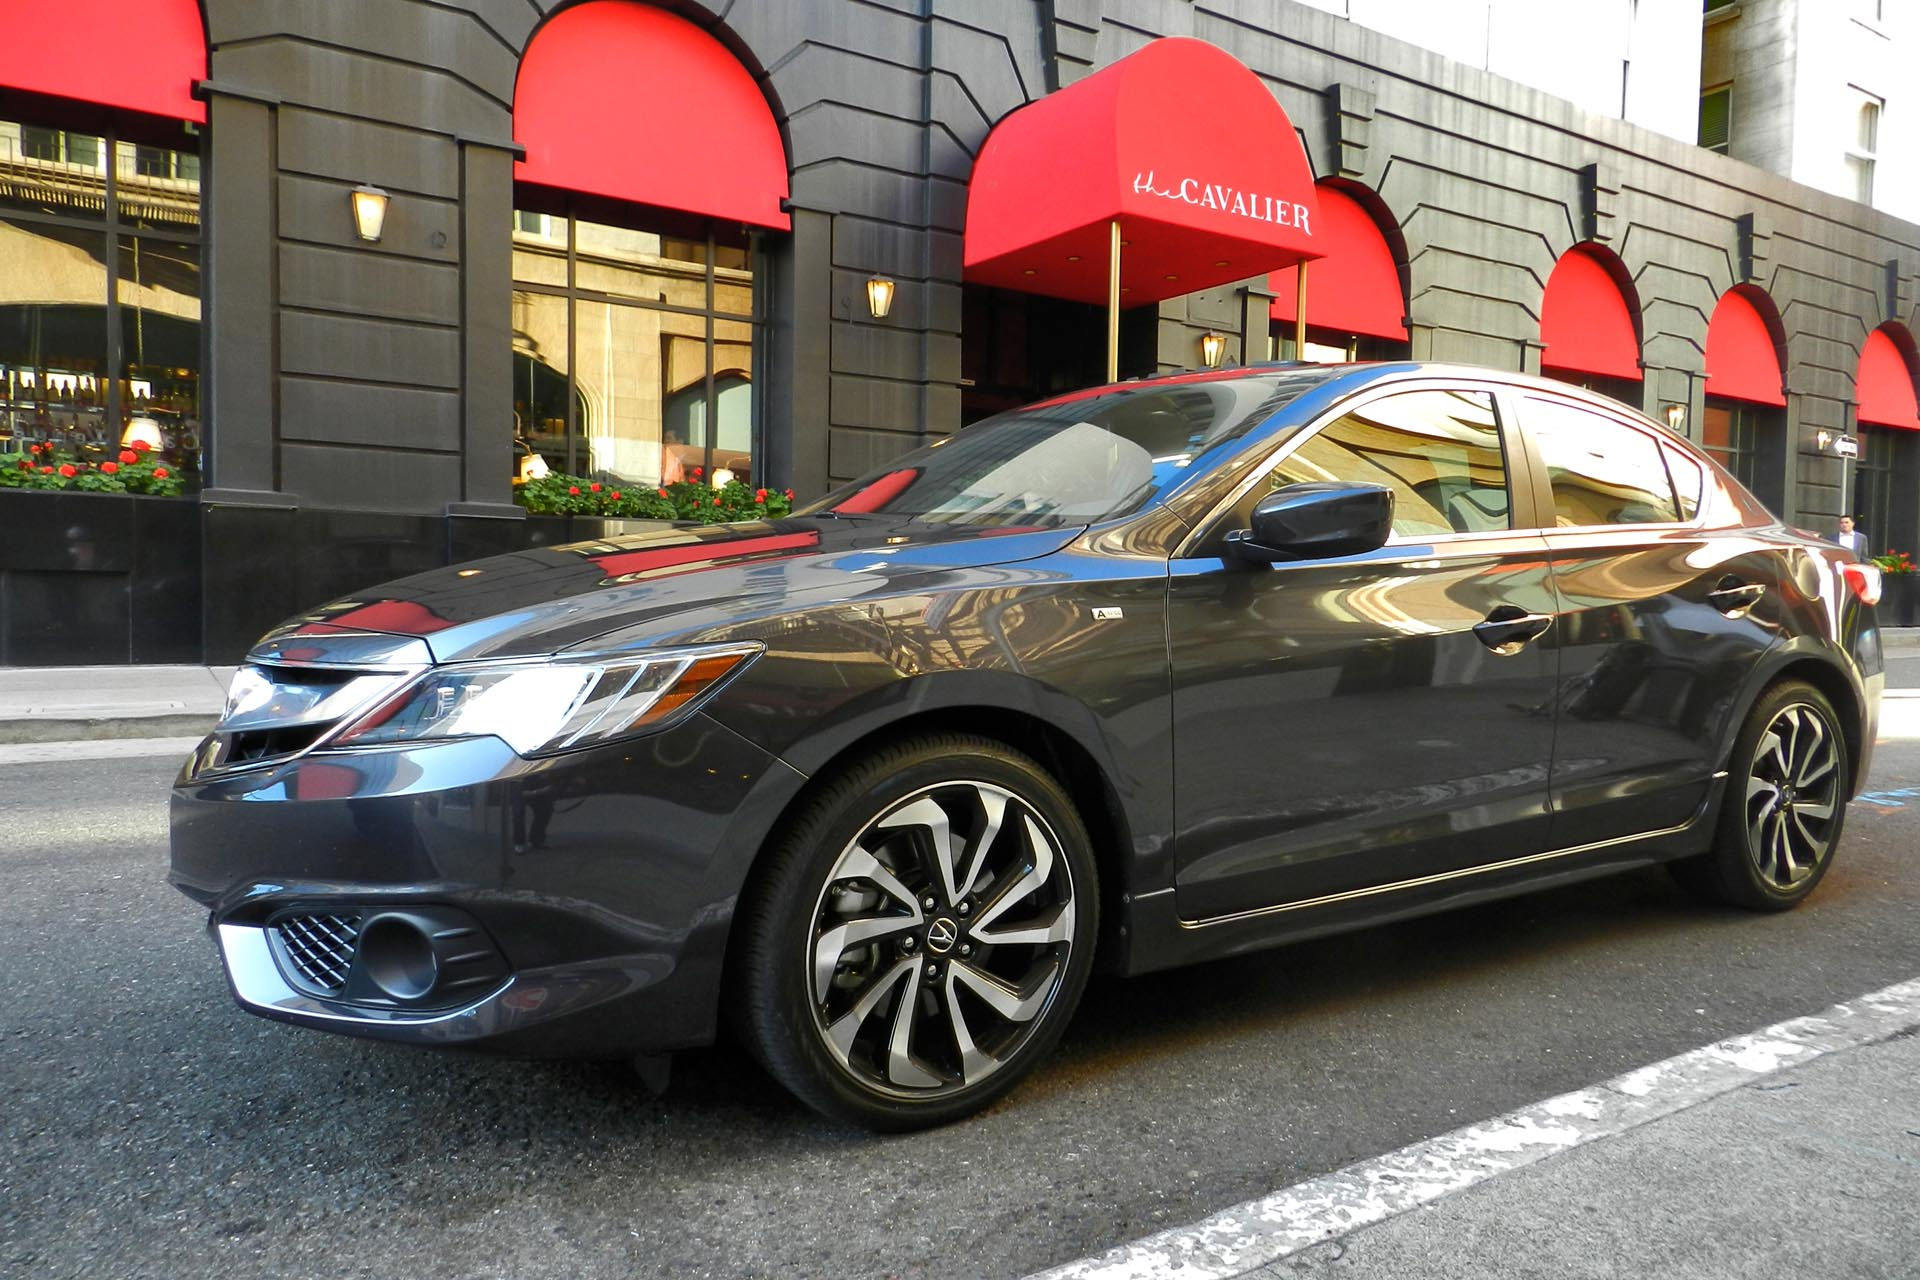 new the ilx preview previews cars car nadaguides acura introduction updated